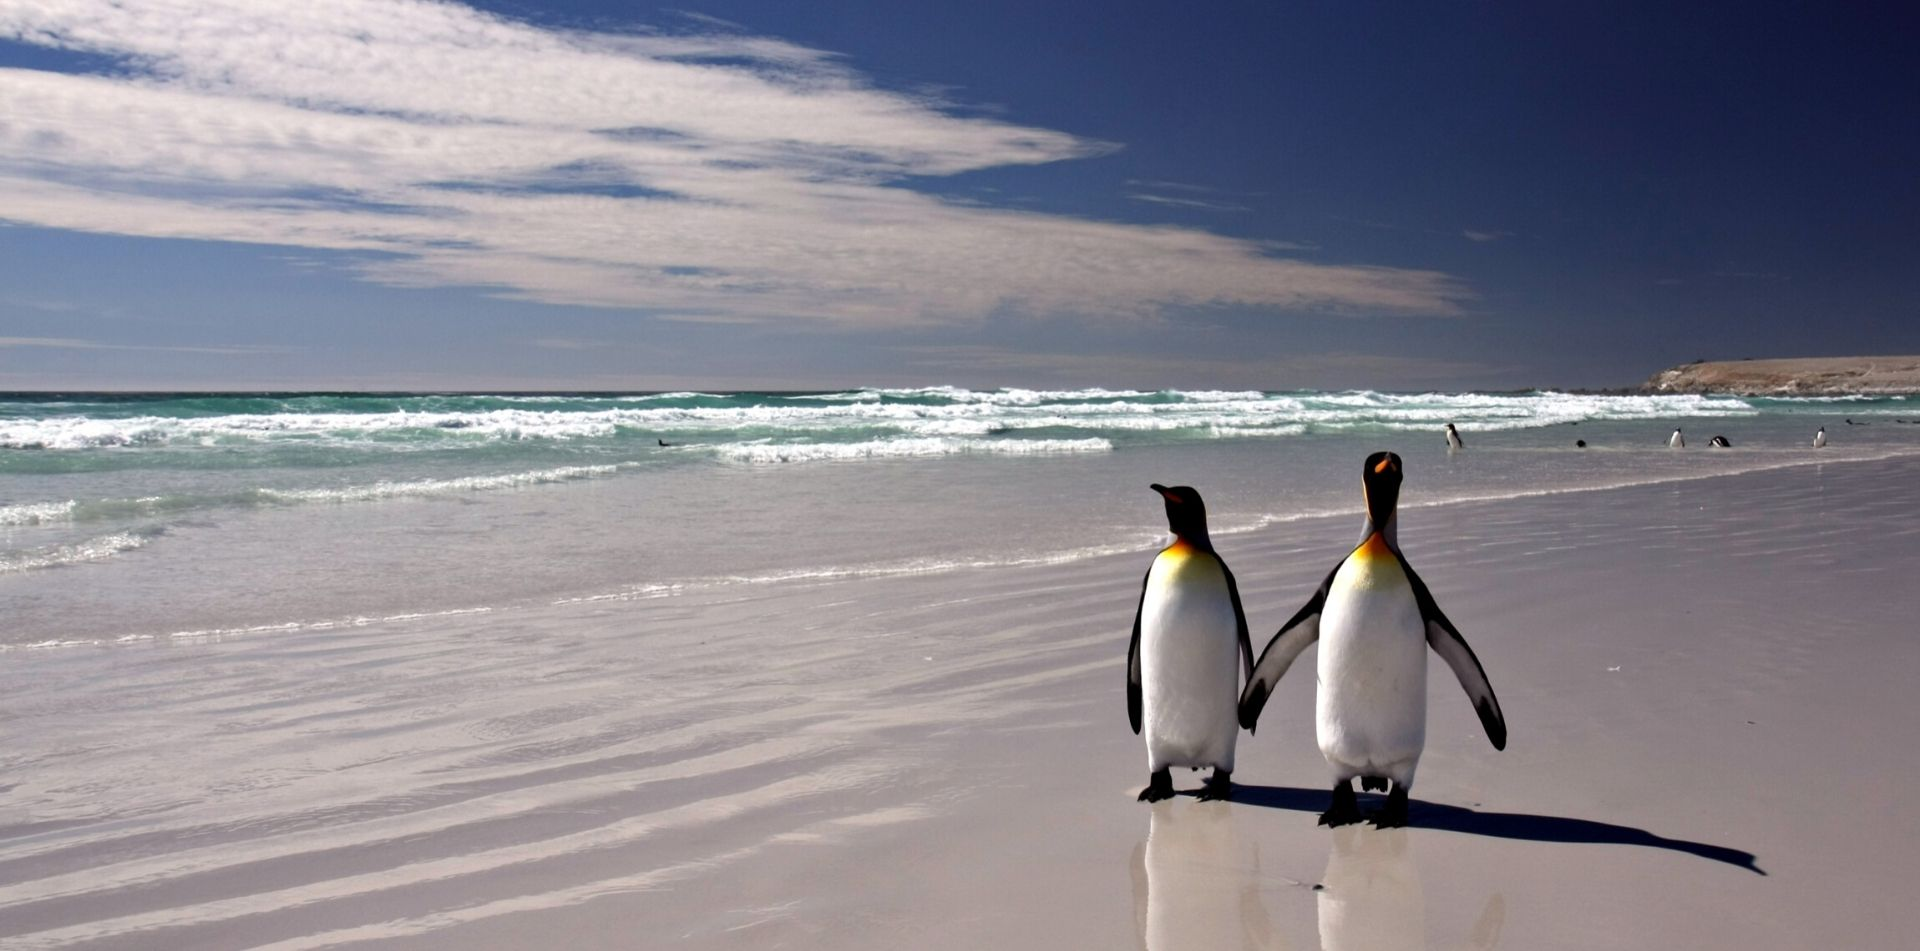 two mated penguins walking together on a sandy beach